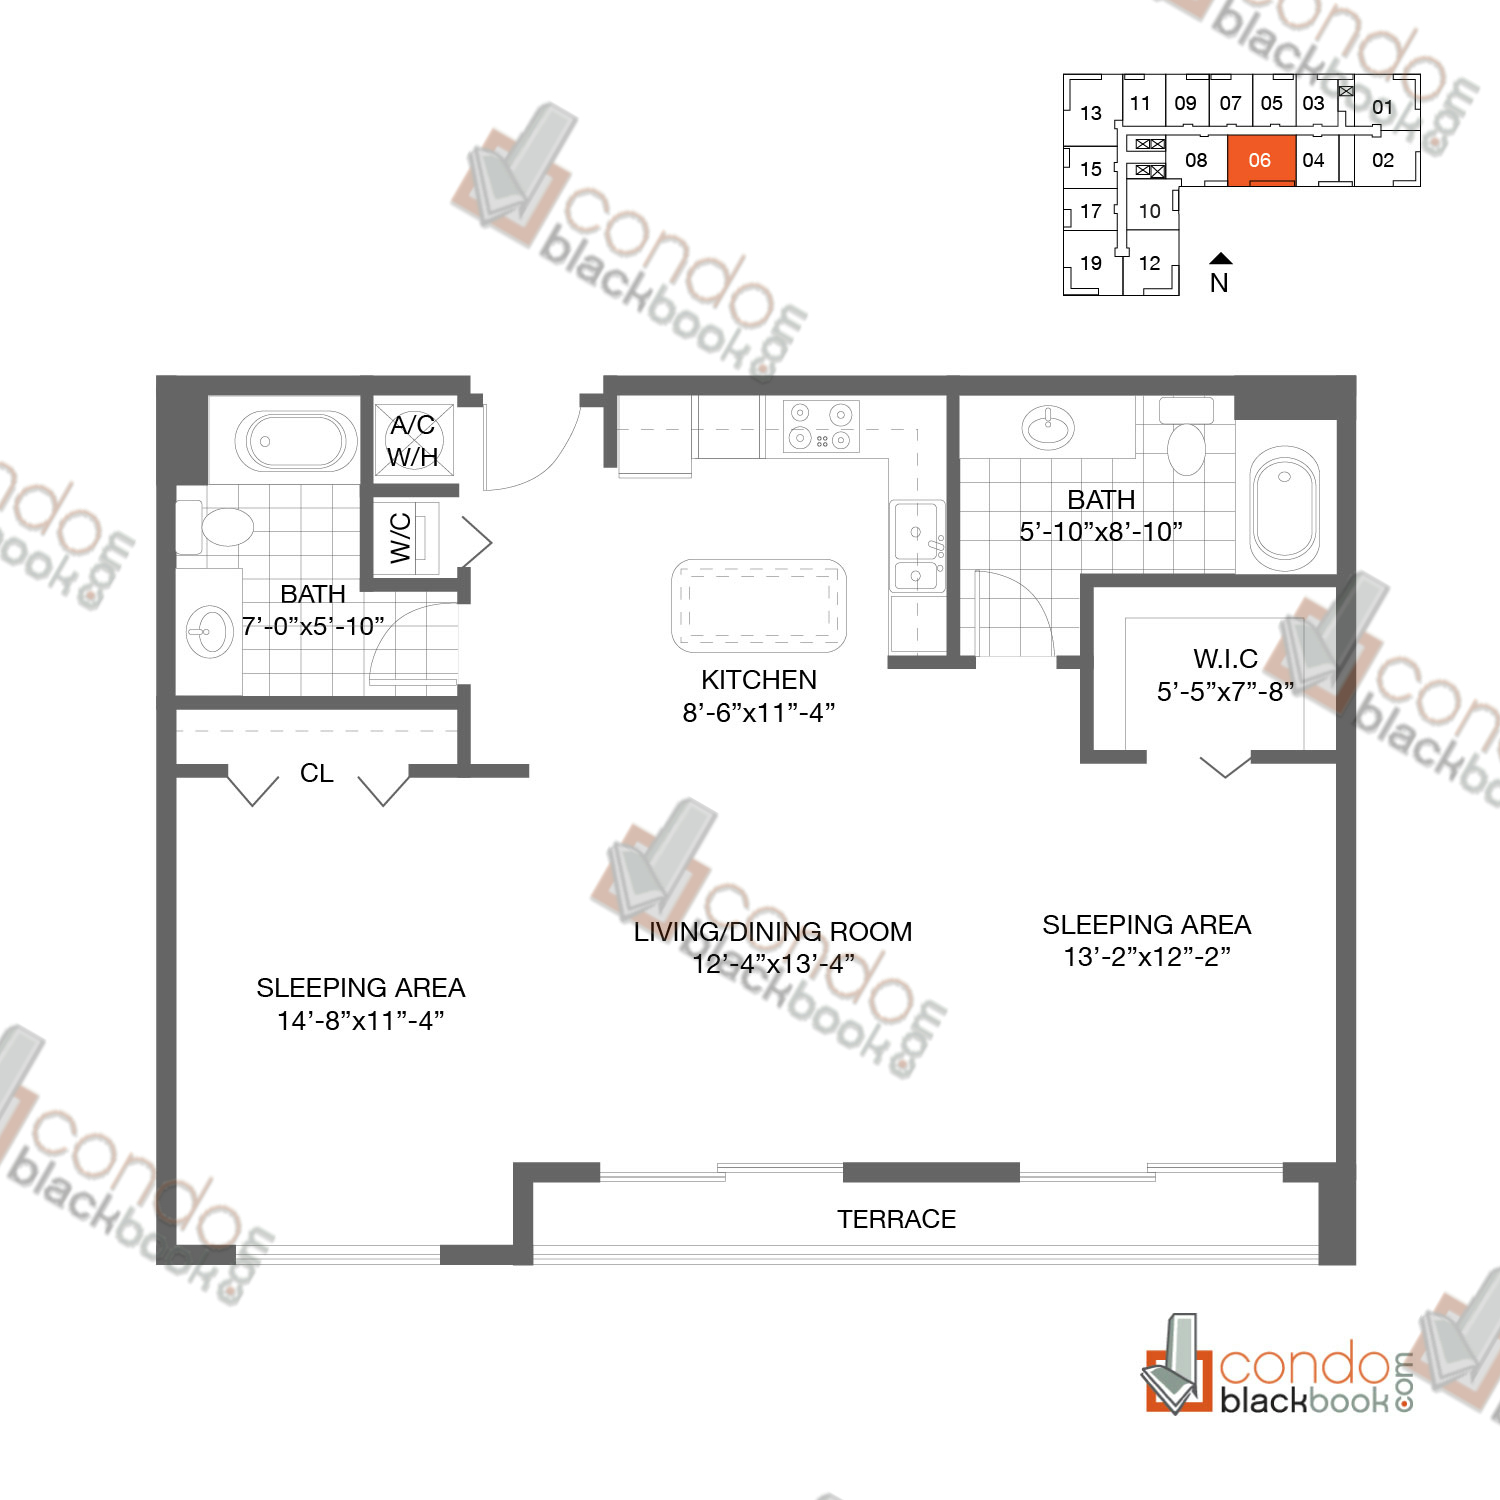 Floor plan for Loft Downtown II Downtown Miami Miami, model B1, line 06, 2/2 bedrooms, 1.010 sq ft